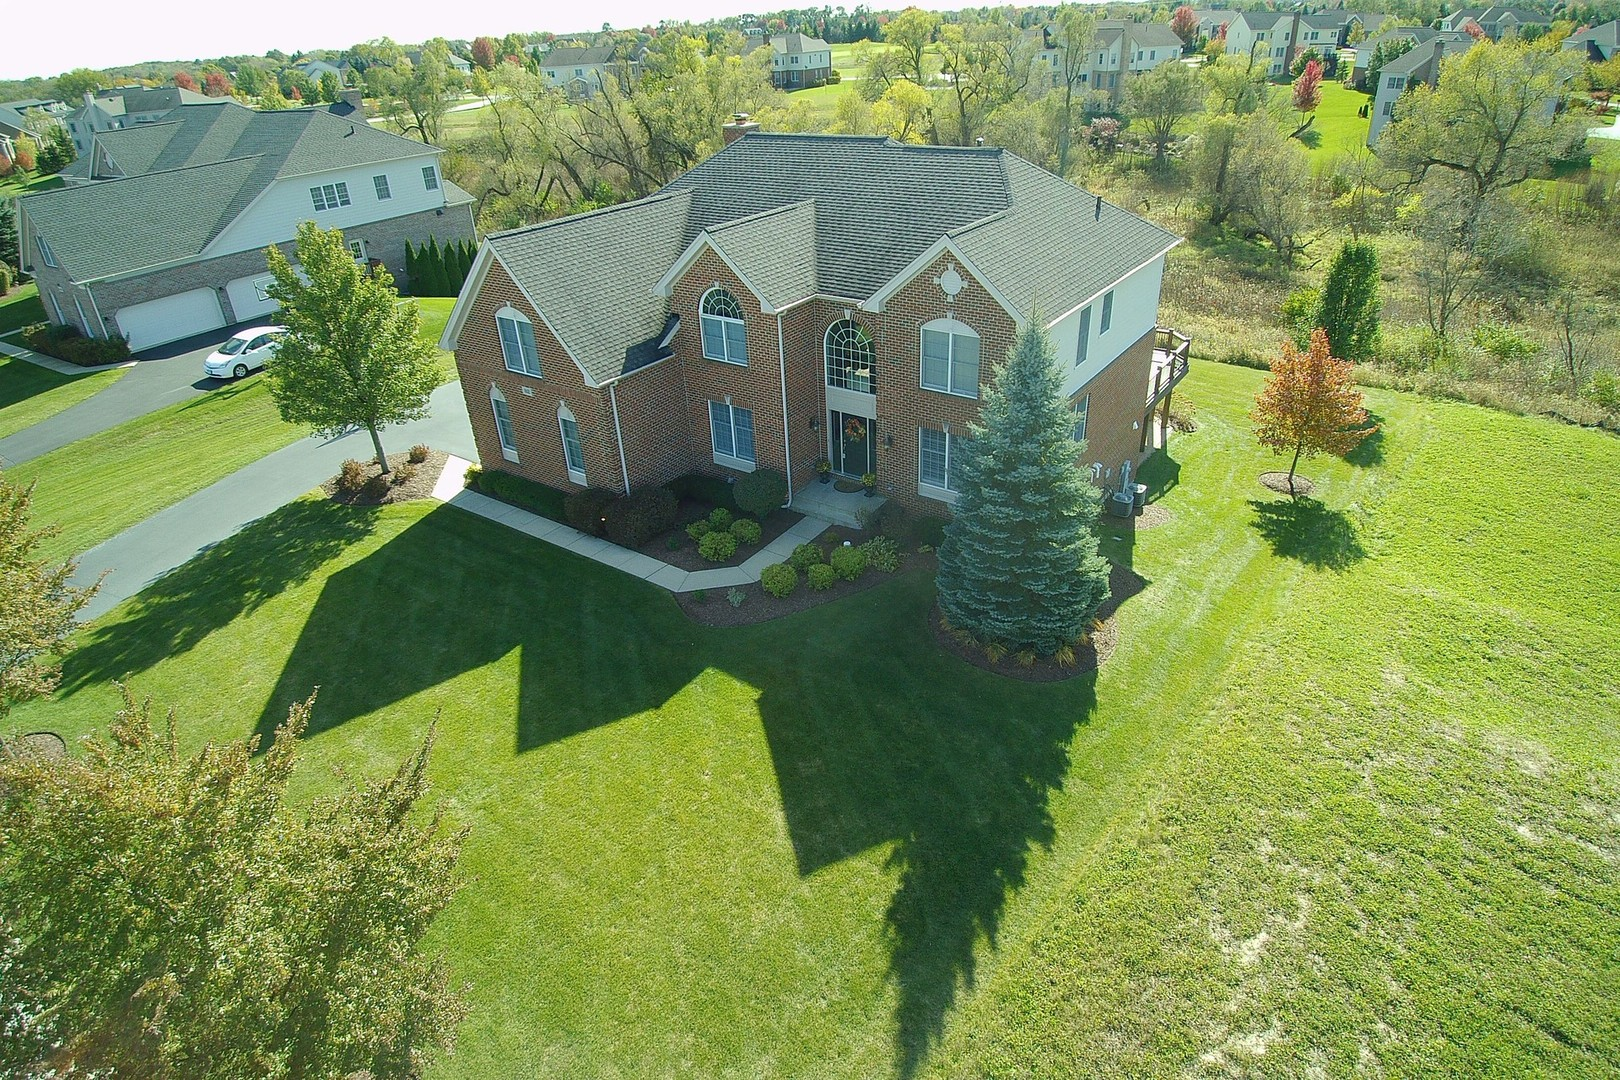 82 Tournament Drive, Hawthorn Woods, Illinois 60047